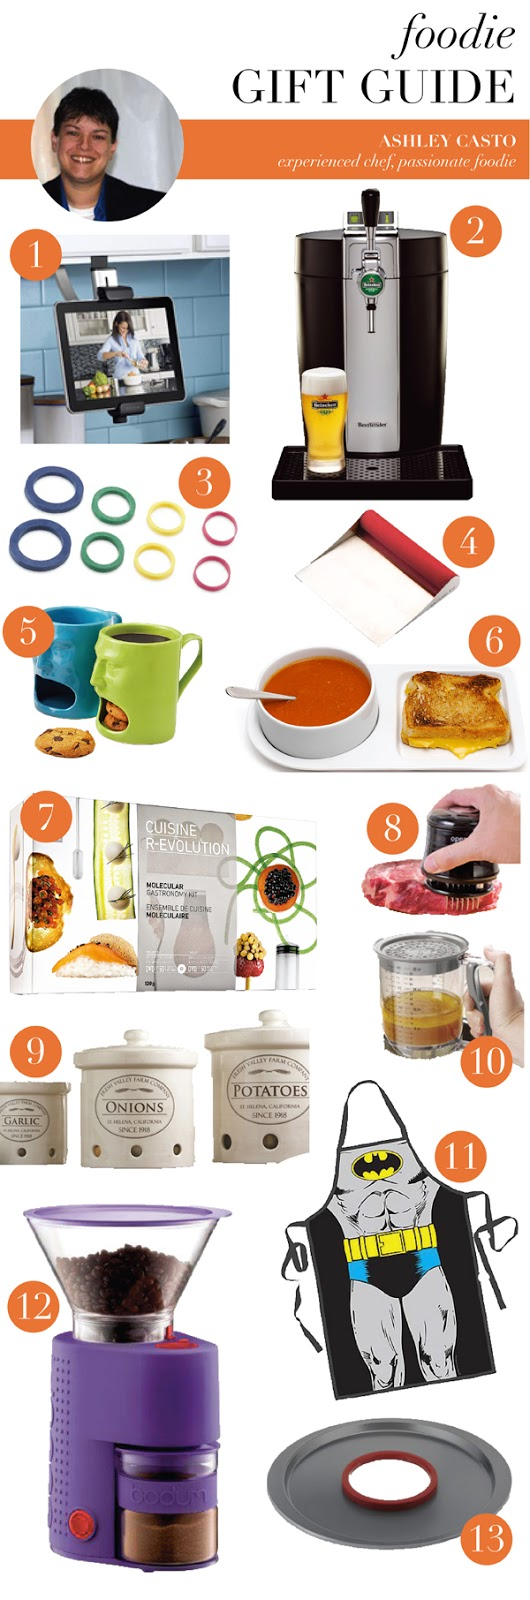 foodie gift guide (via Holly Would)